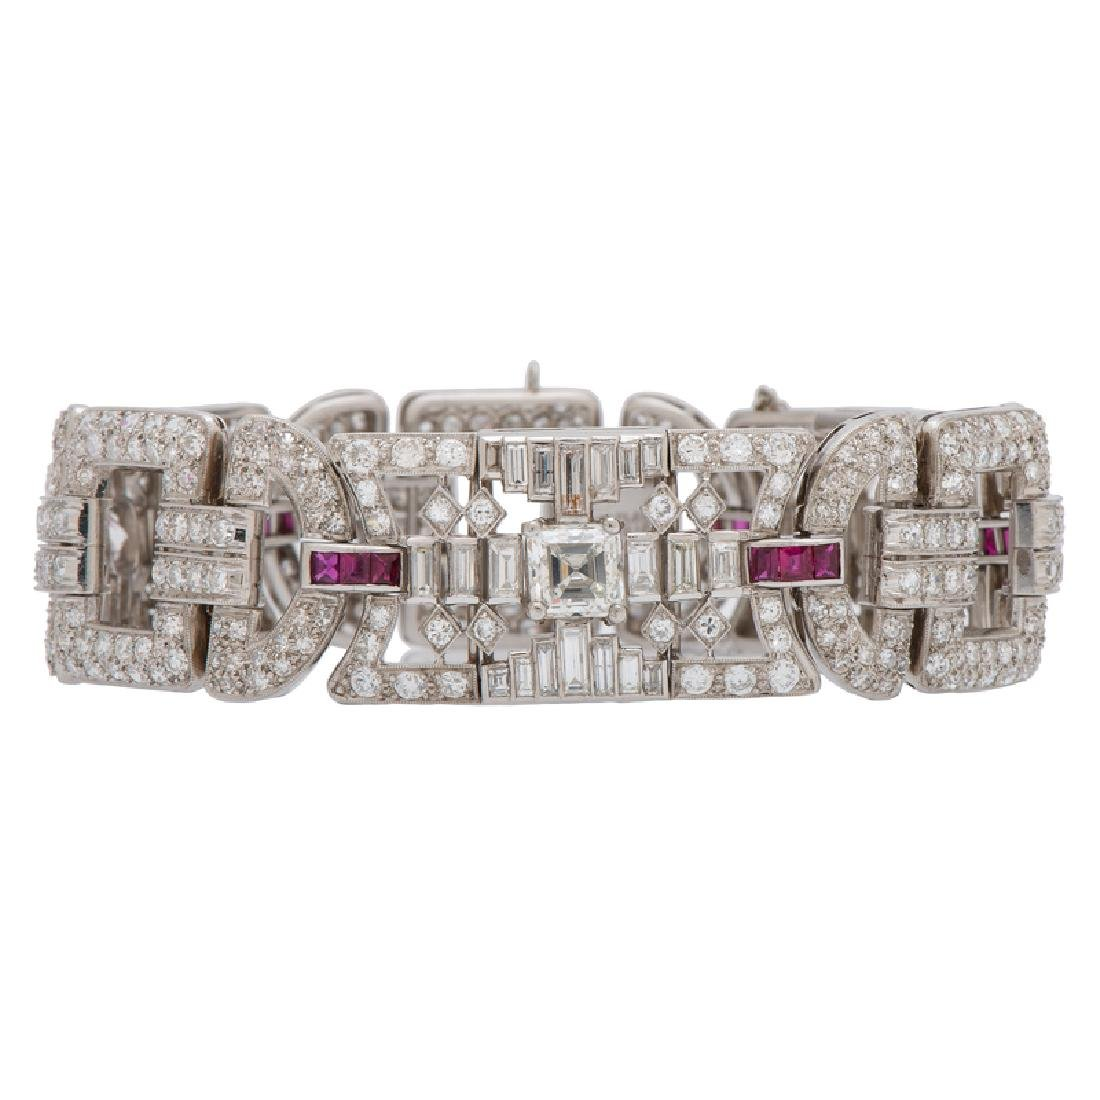 Tiffany & Co. Art-Deco Diamond and Ruby Bracelet in